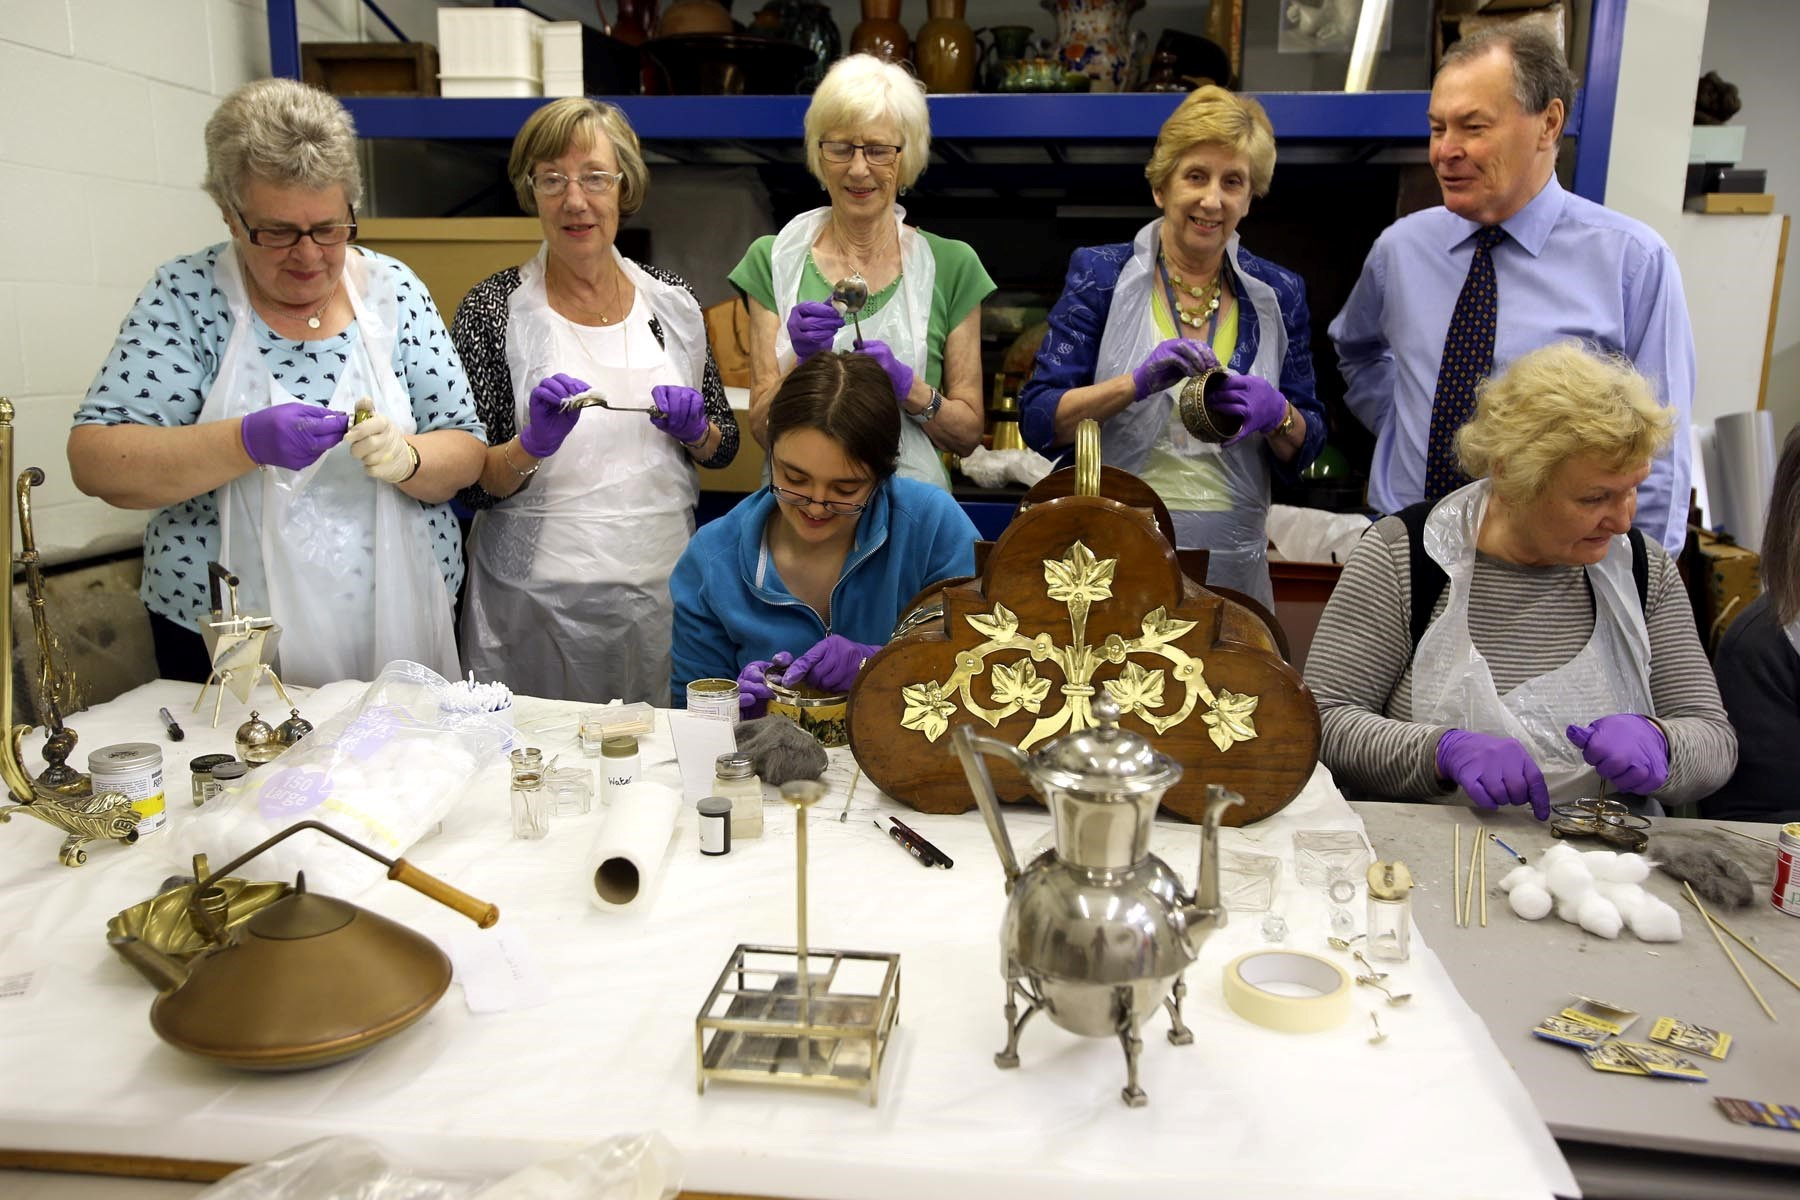 SUMMER CLEAN: Members of the Linthorpe W.I. at the Dorman Museum on Linthorpe Road, Middlebrough give the antique Dresser pottery a clean.  Pictured are Pauline Coates, Mary Ellis, Margaret Stephenson, museum volunteer Lauren Eccles (sitting), cl